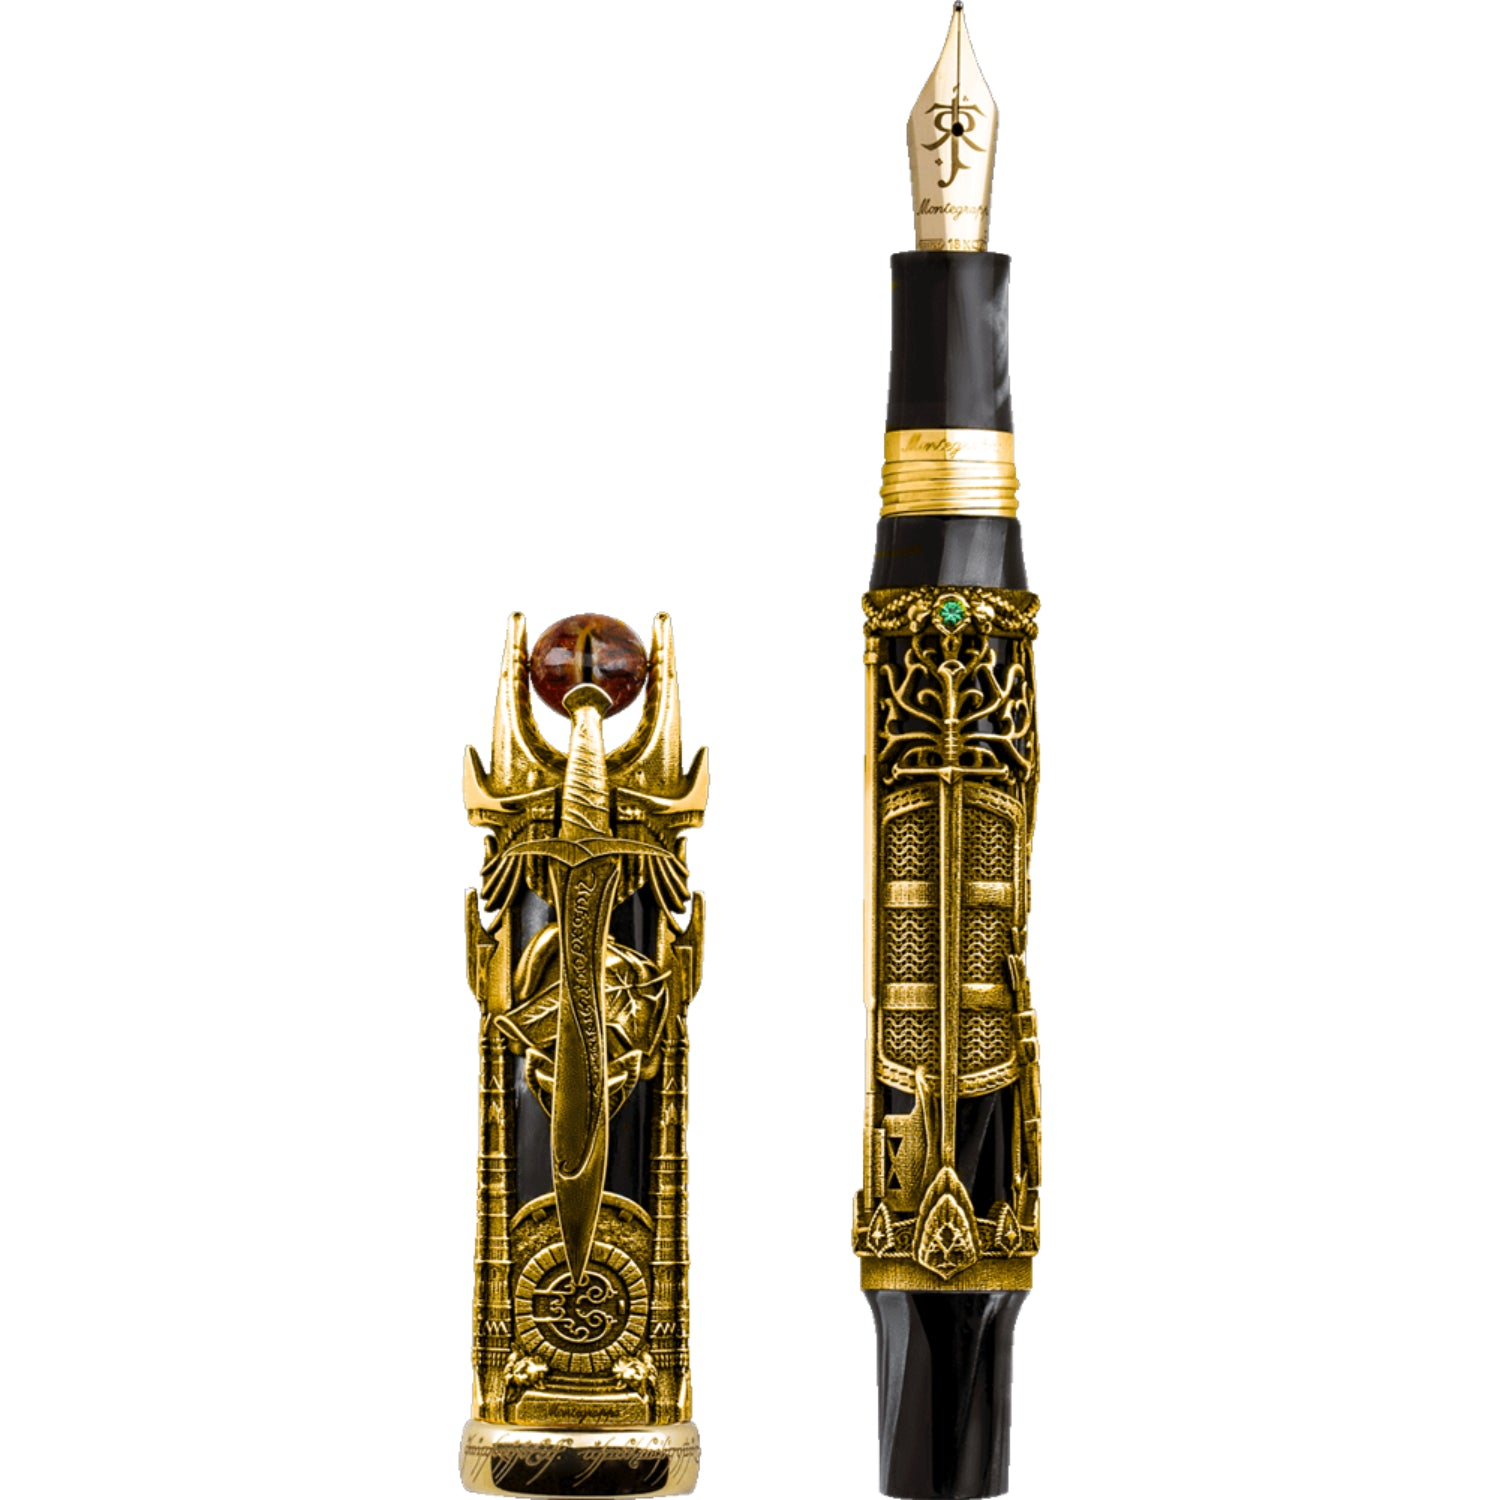 The Lord Of The Rings L.E., Fountain Pen, 18K Gold, Stub 1.1